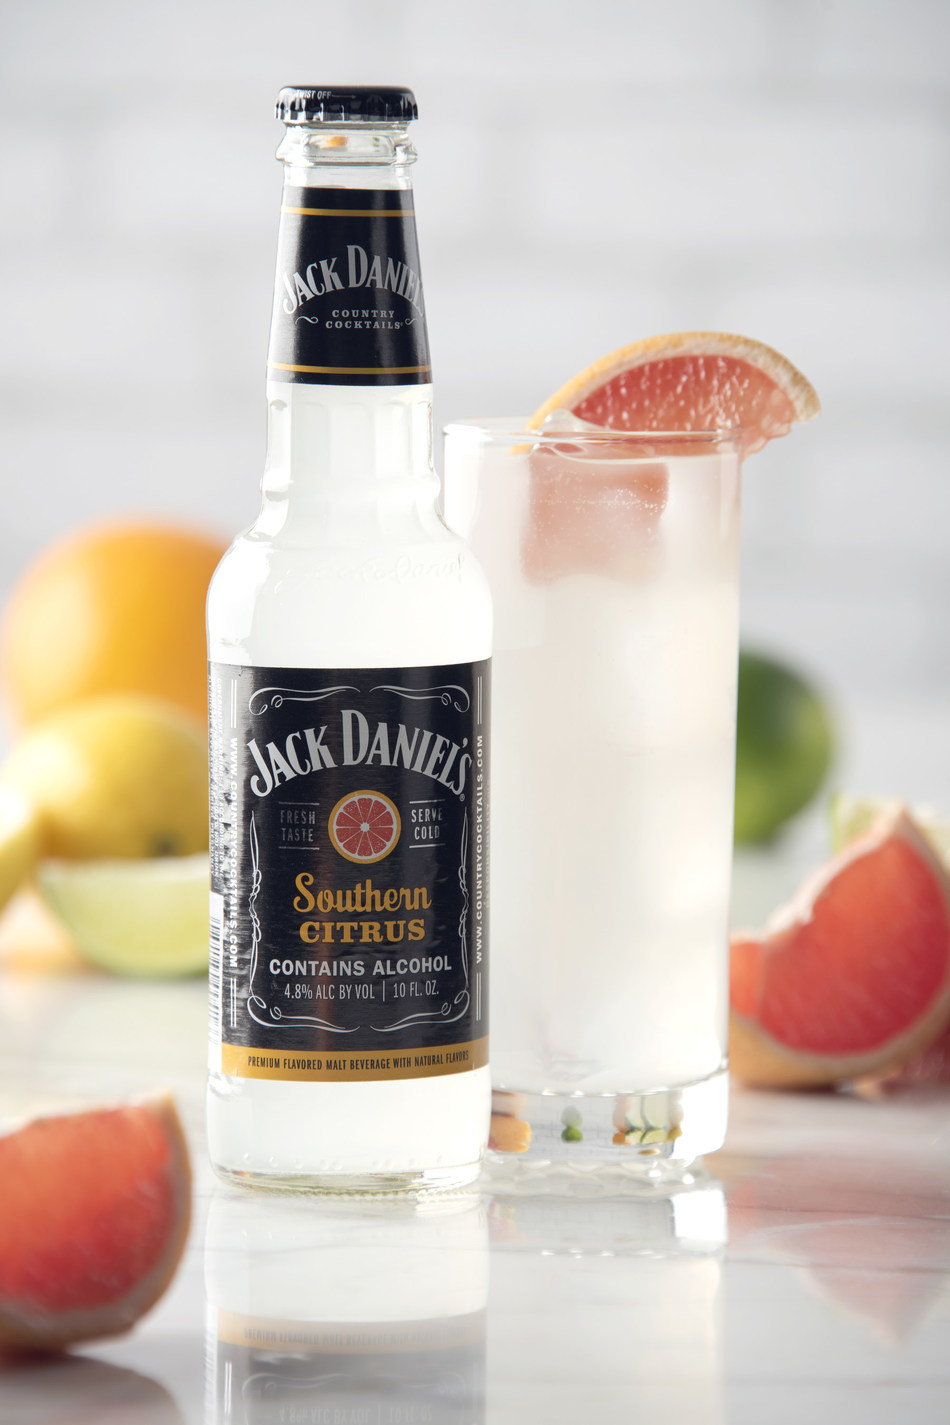 Jack Daniel's Country Cocktails (JDCC) announces the launch of its newest flavor, Southern Citrus. JDCC Southern Citrus is a blend of grapefruit and citrus flavors, featuring light and crisp citrus aromas, complimented by soft hints of Jack Daniel's Tennessee Whiskey.